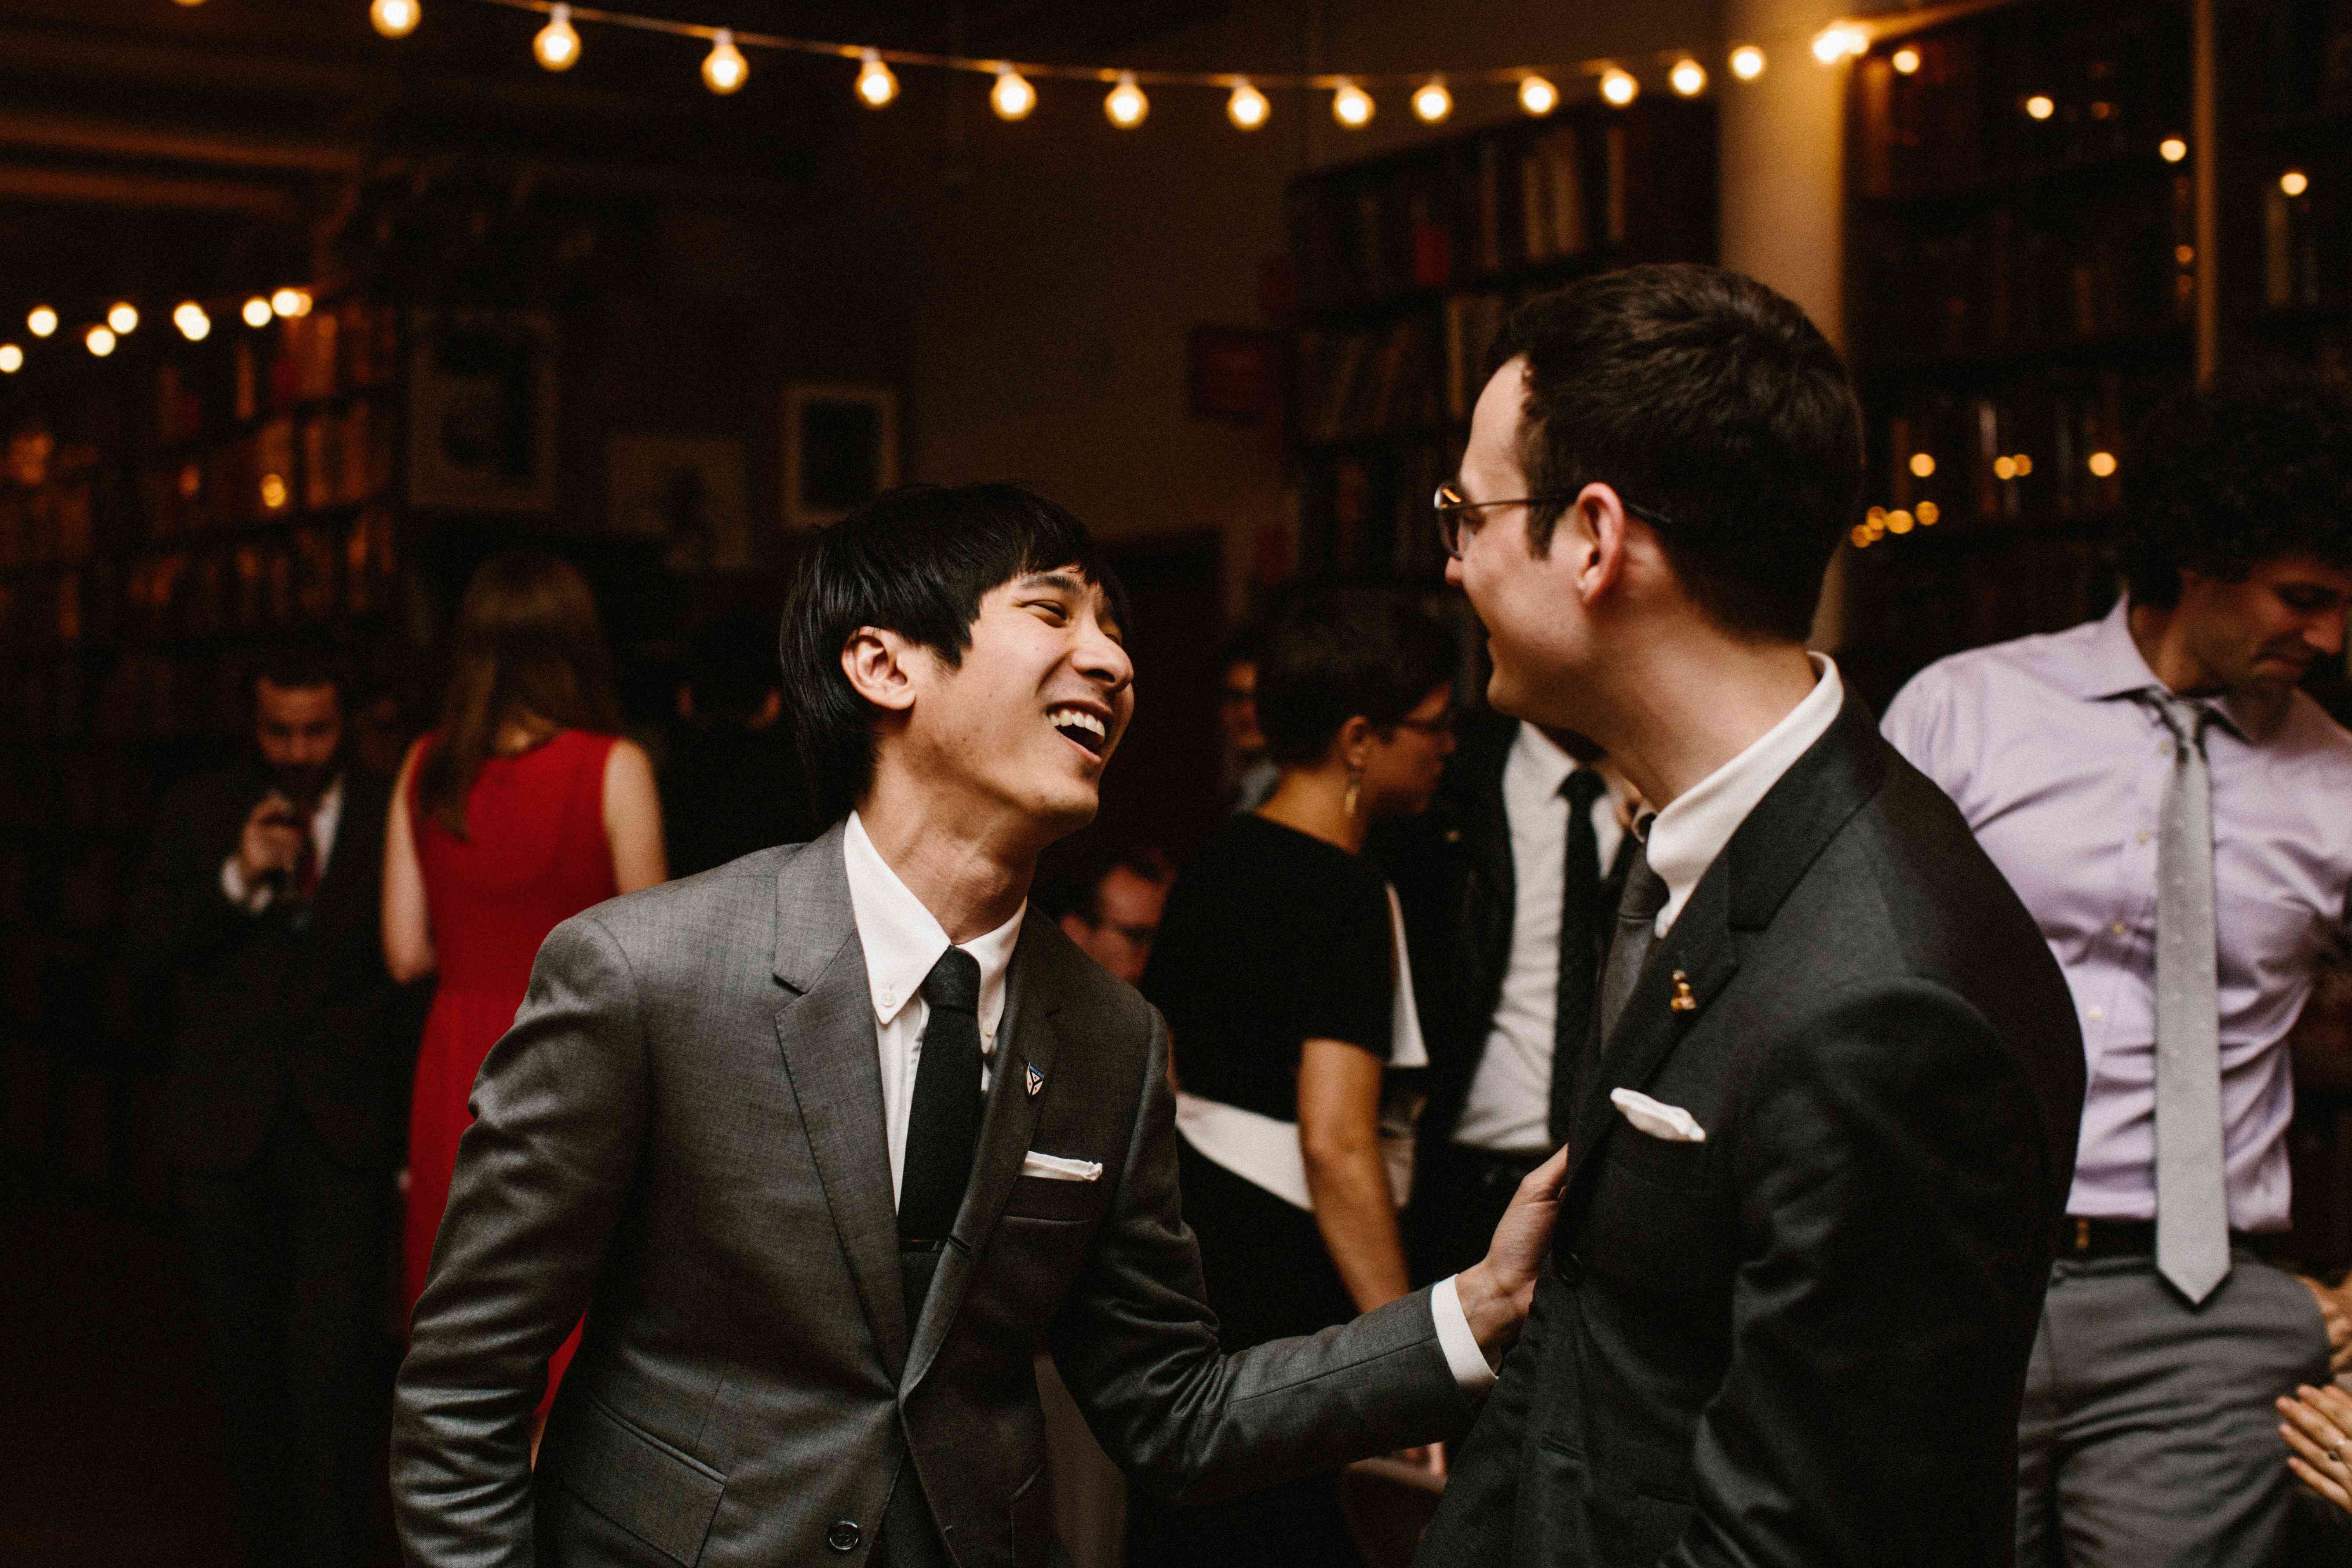 Grooms laughing